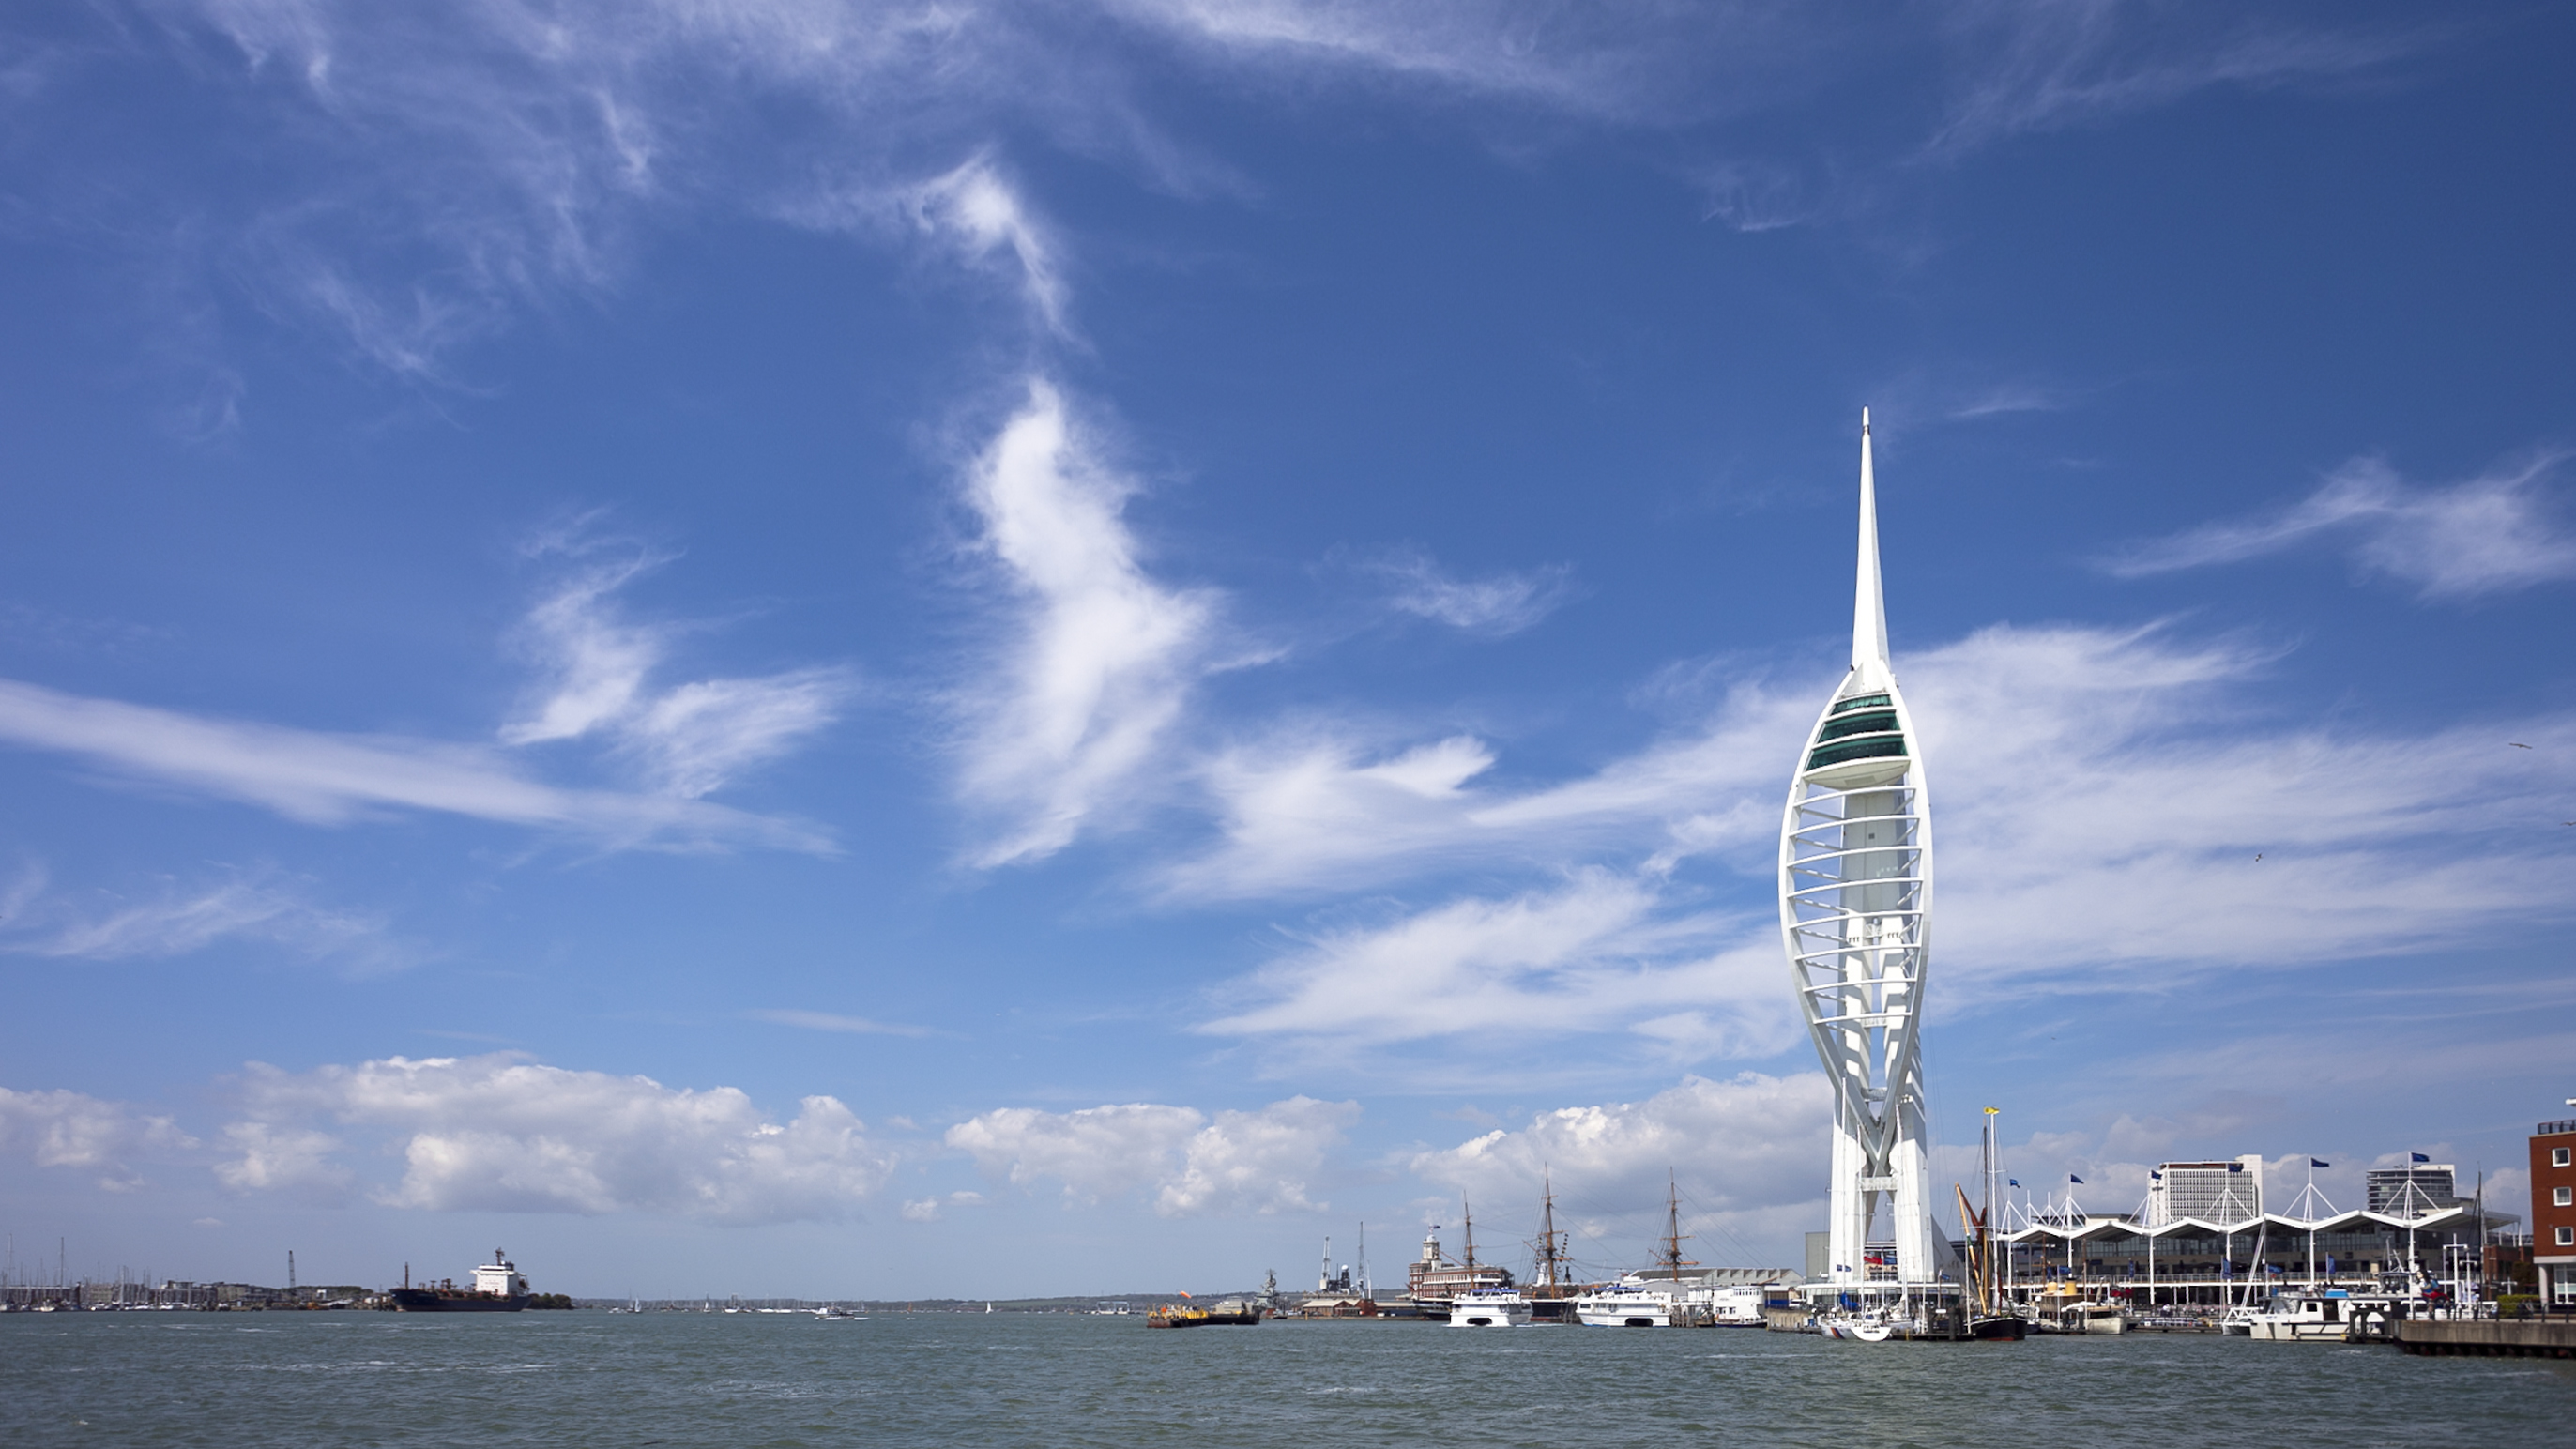 Portsmouth-Spinnaker Tower panorama